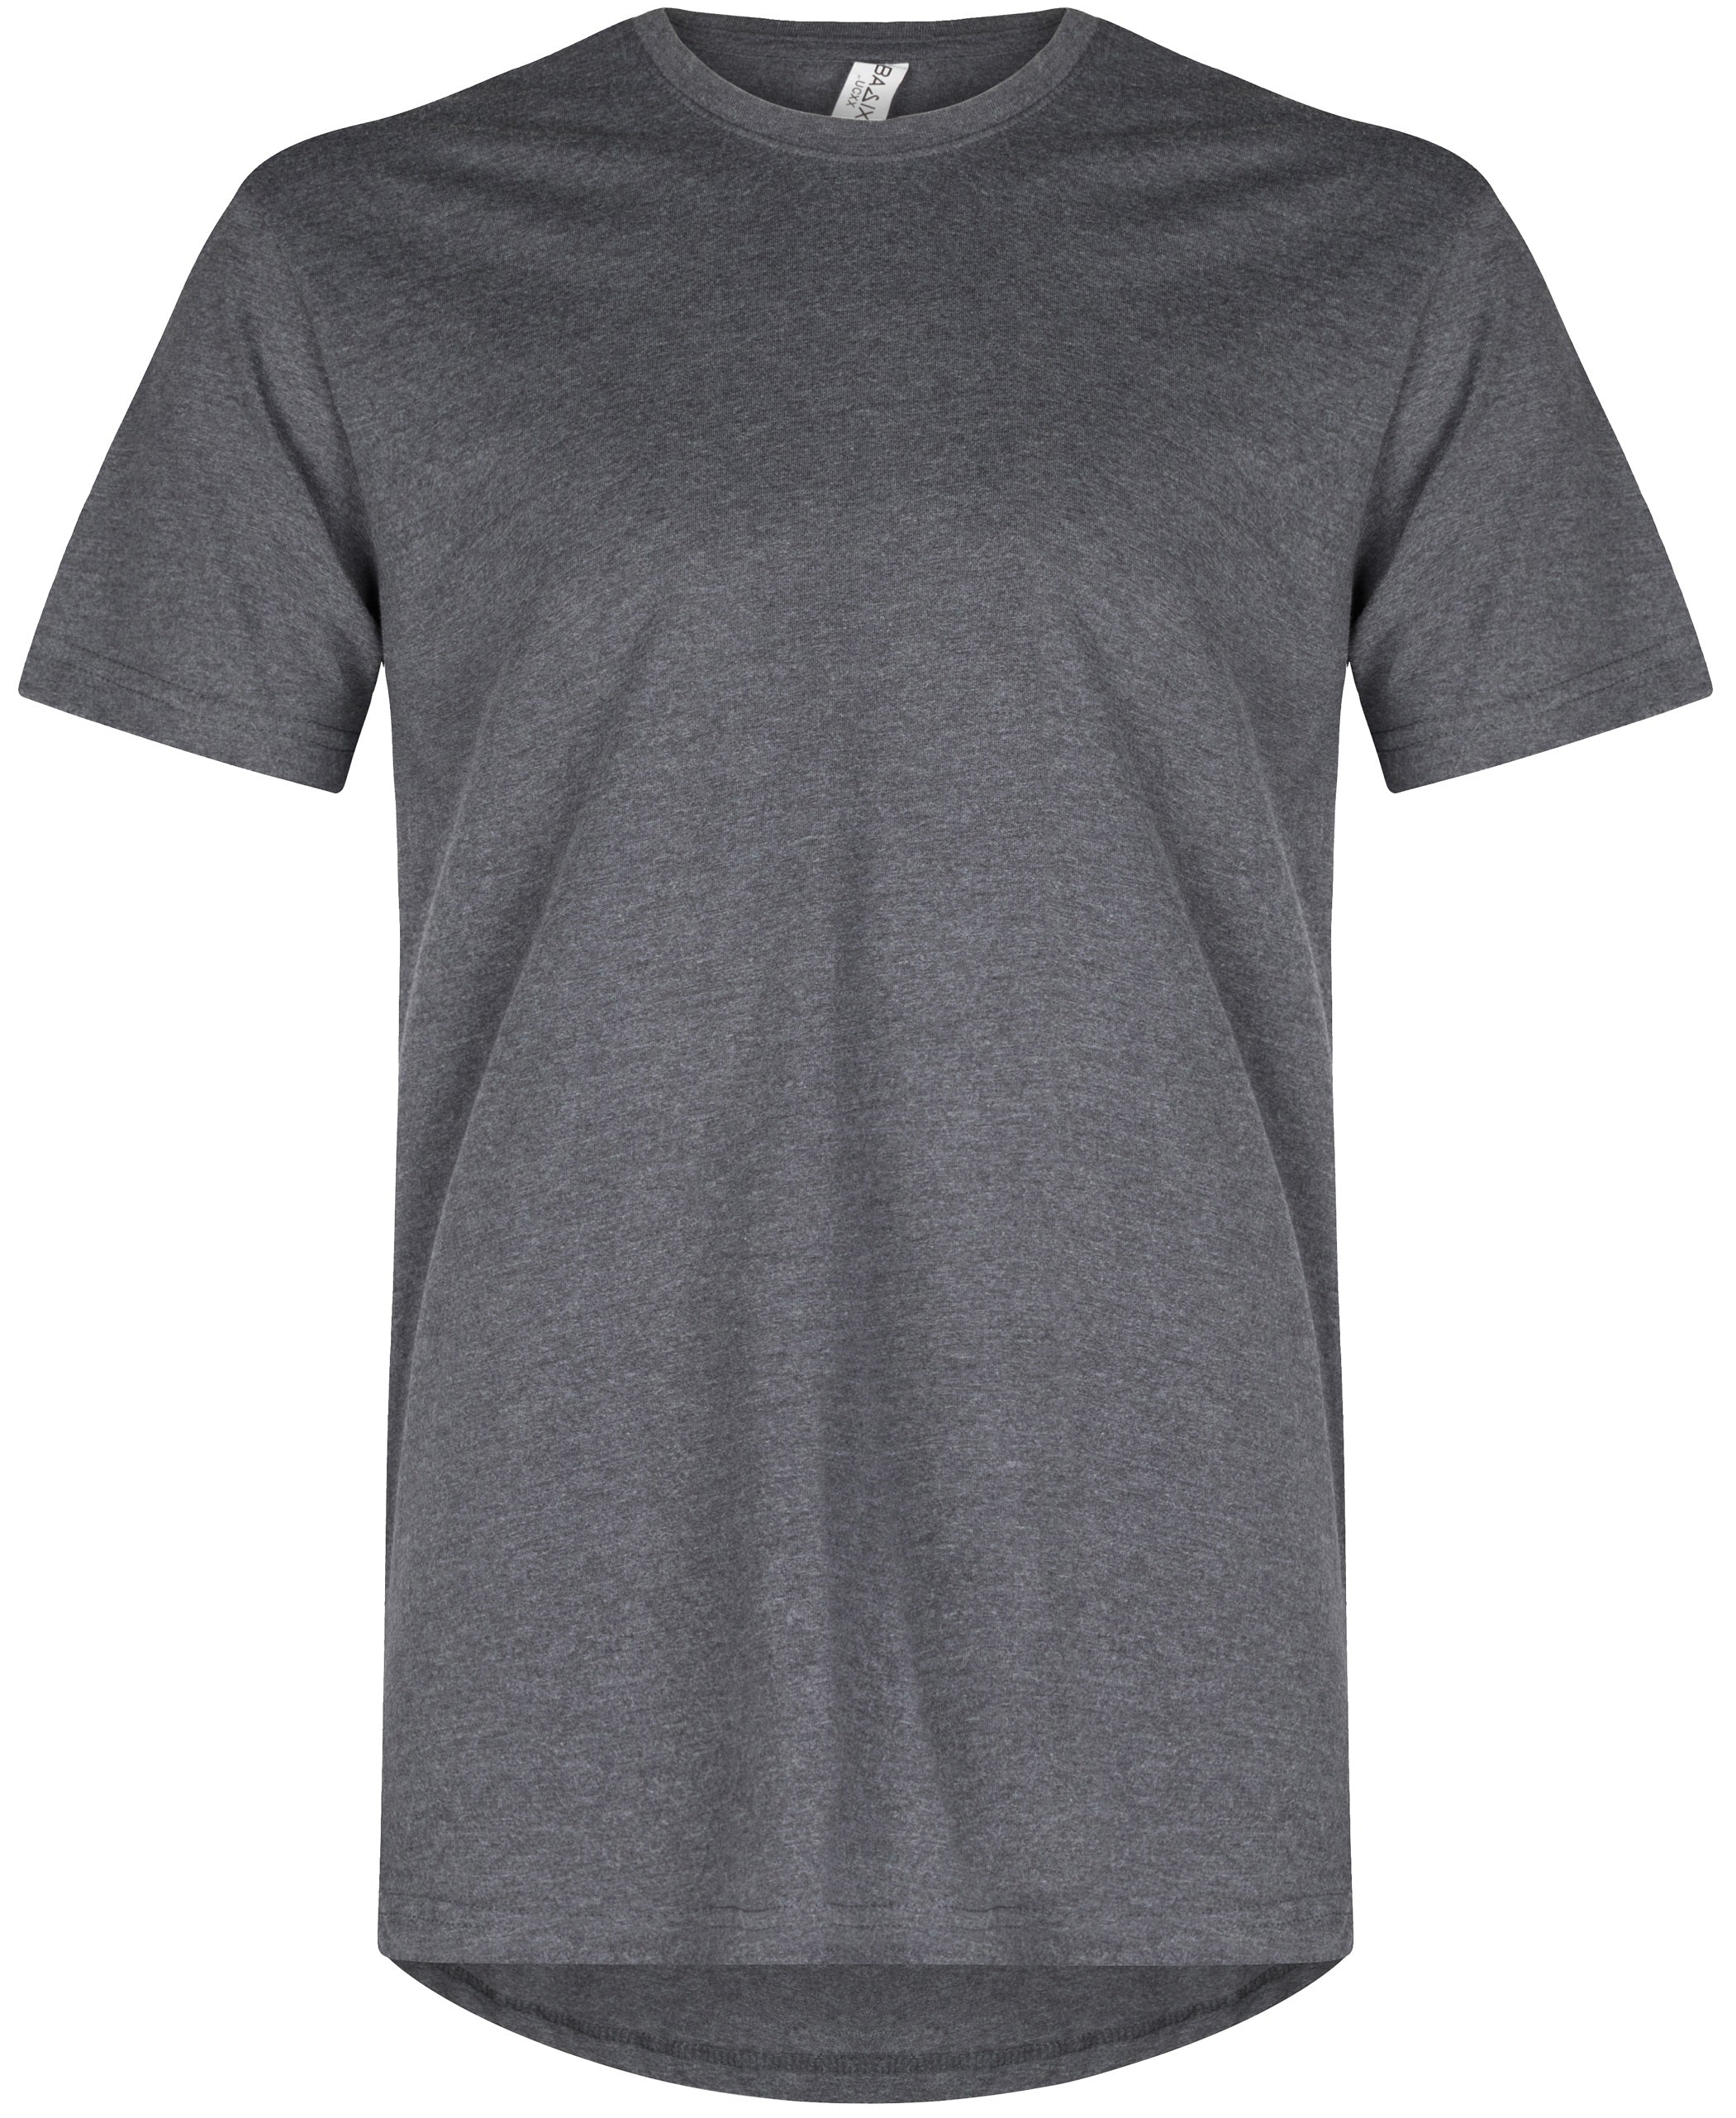 Basic Elongated Straight Scoop T-Shirt Heather Charcoal